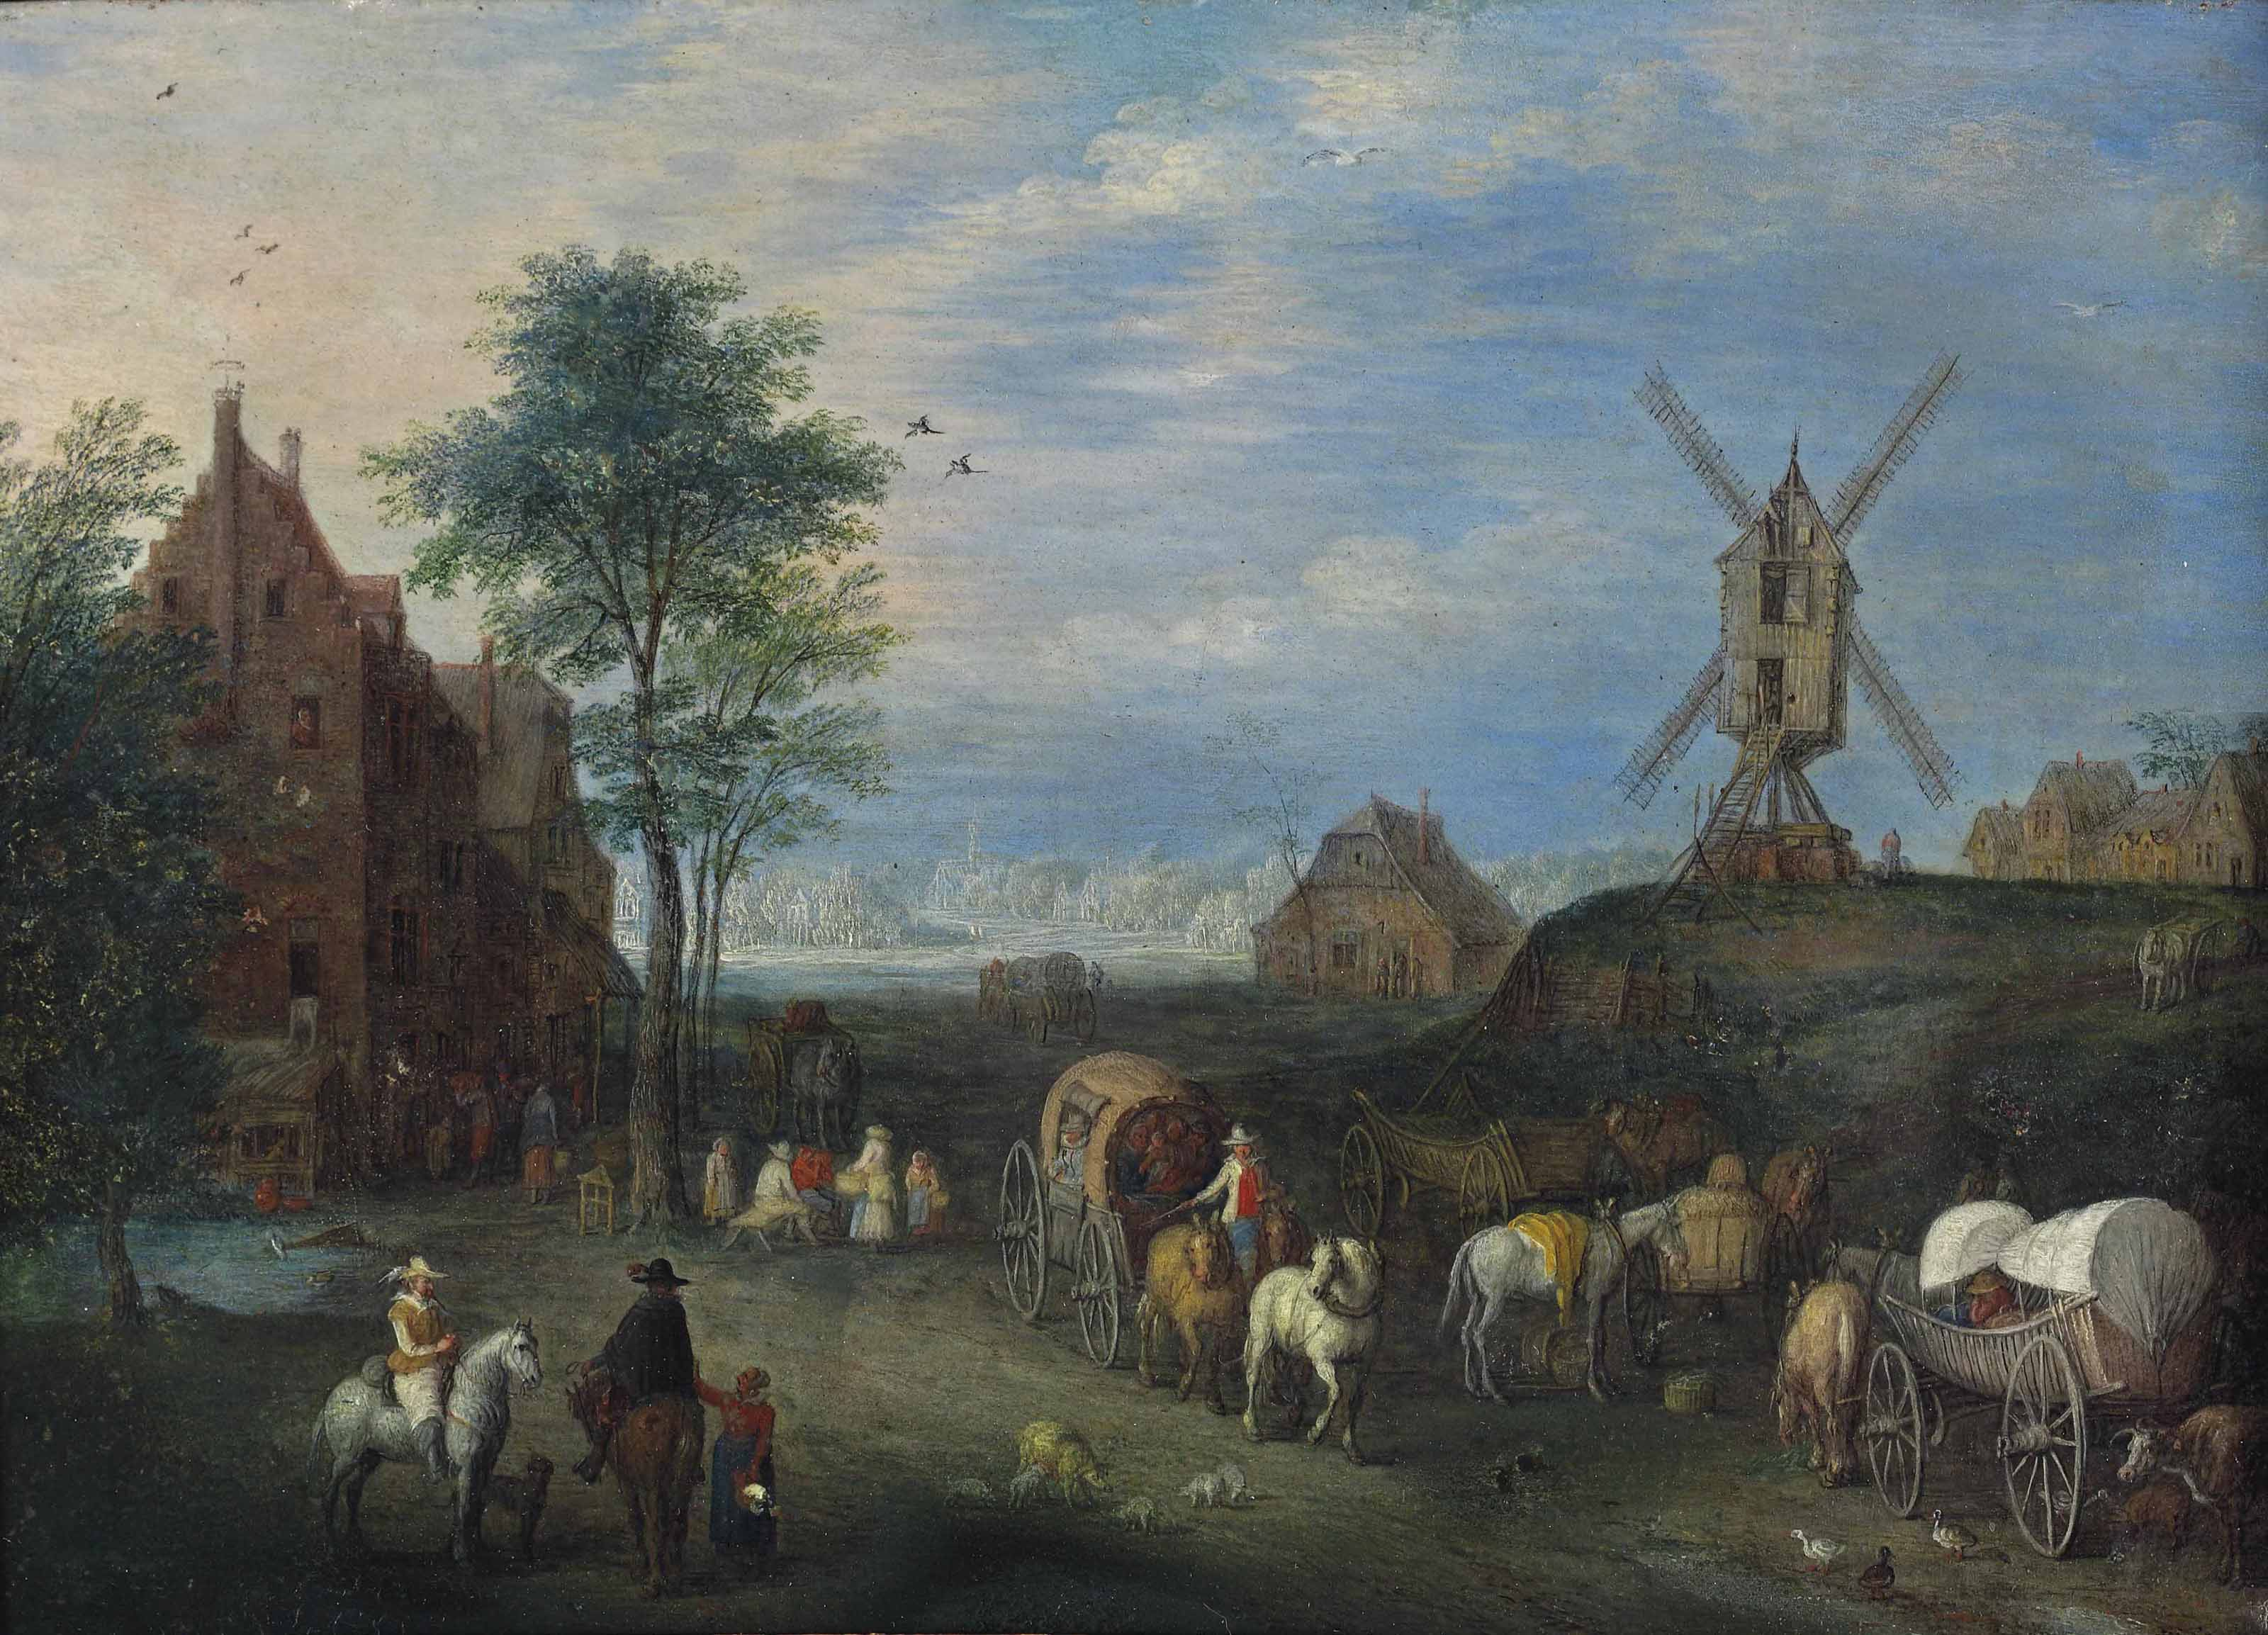 A landscape with travellers on a road in a village, a windmill nearby